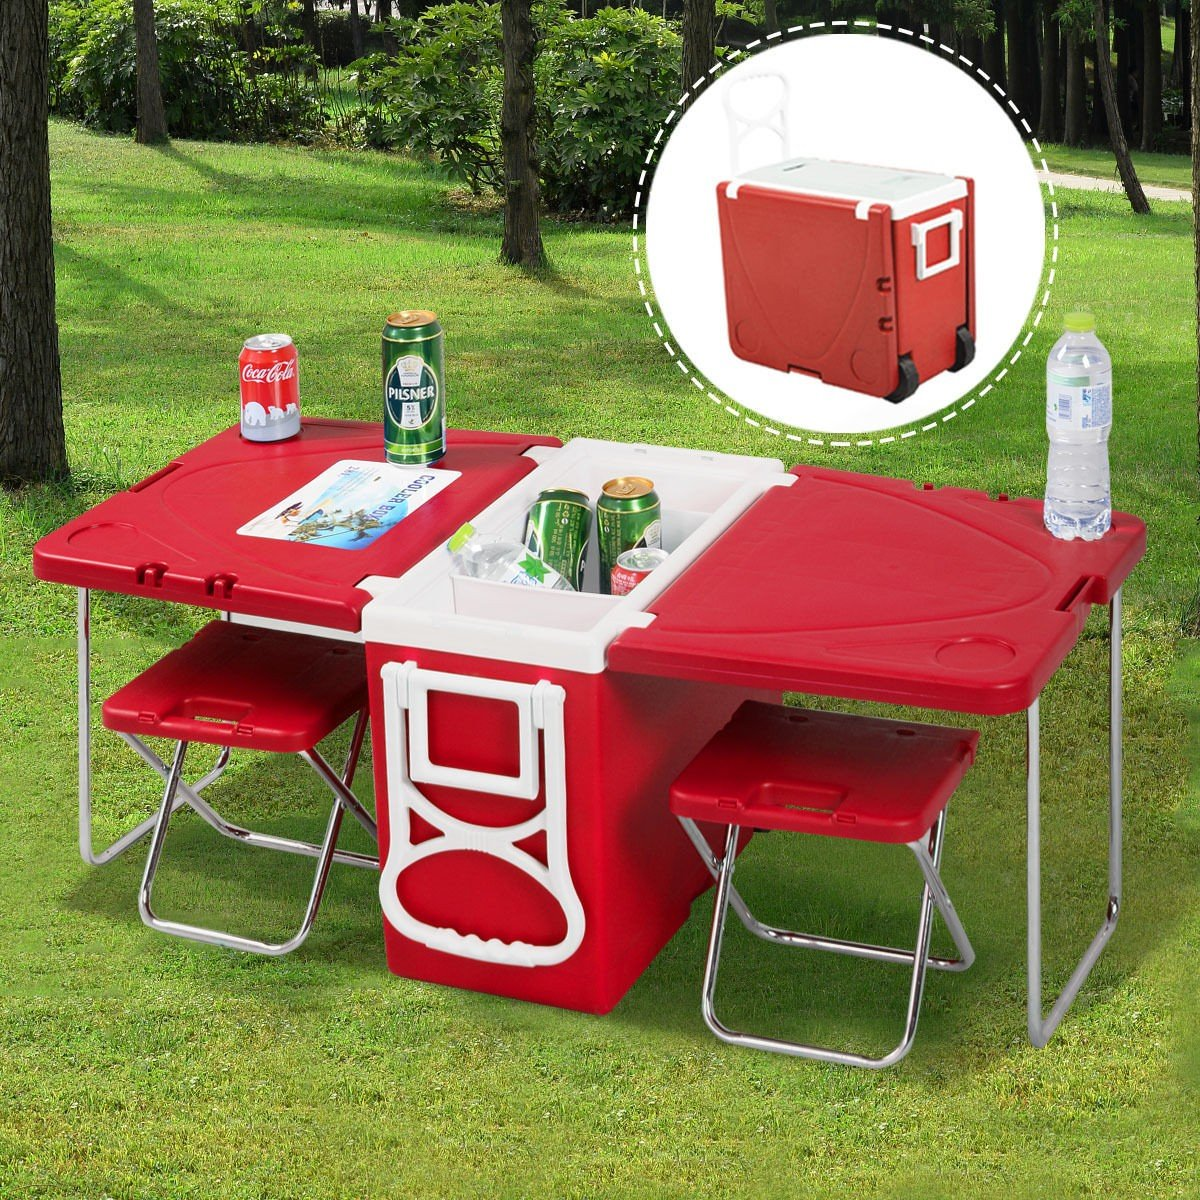 CHOOSEandBUY Multi Functional Rolling Picnic Cooler w/Table & 2 Chairs - RED by CHOOSEandBUY (Image #2)